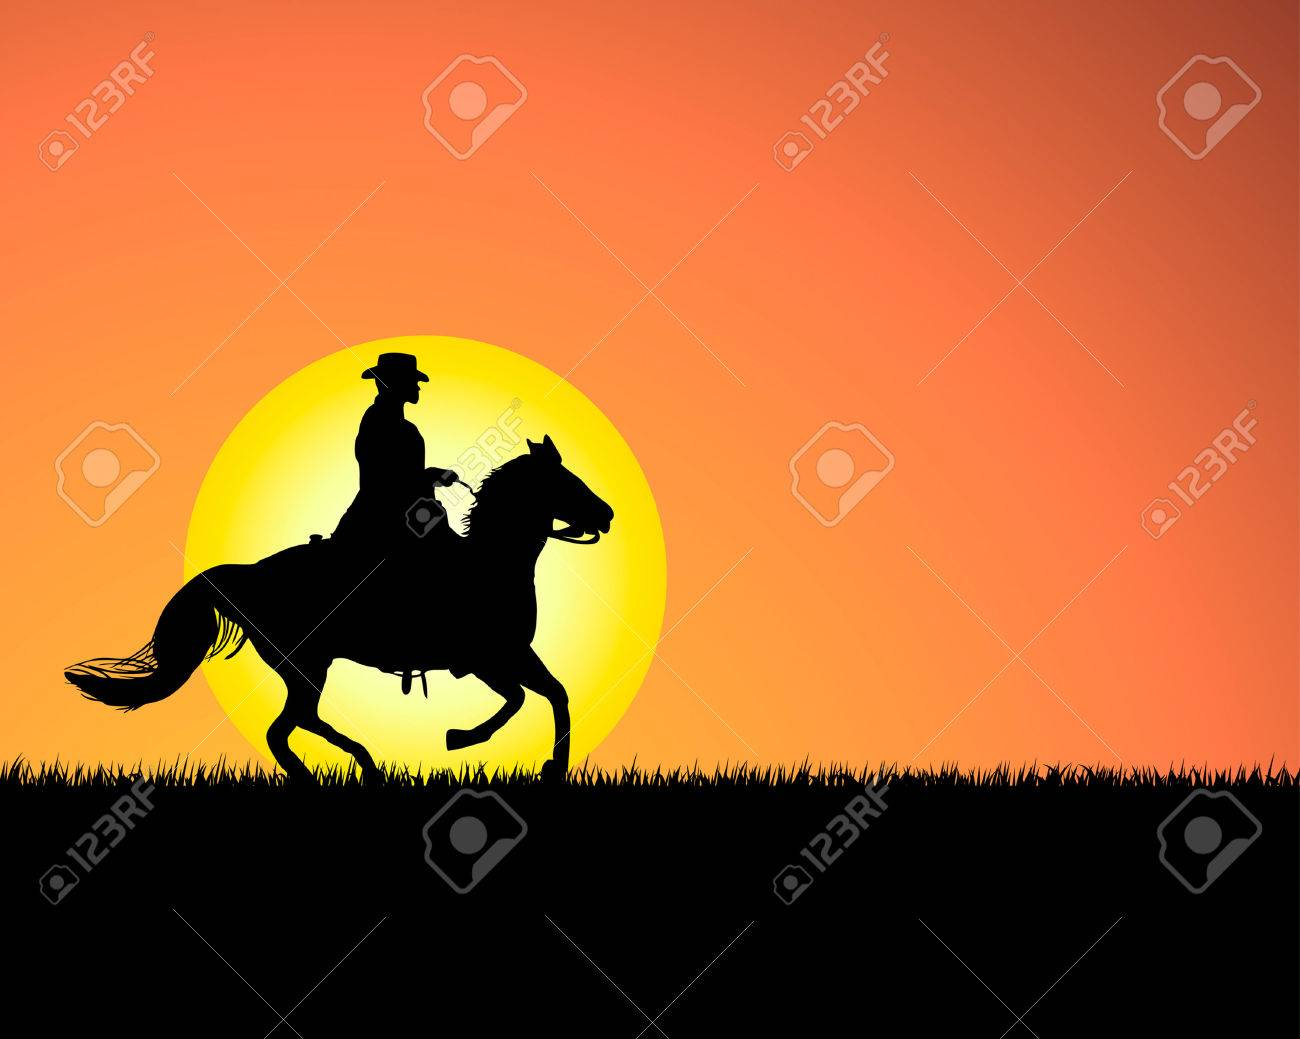 Western Horse Silhouettes Horse Silhouette on Sunset